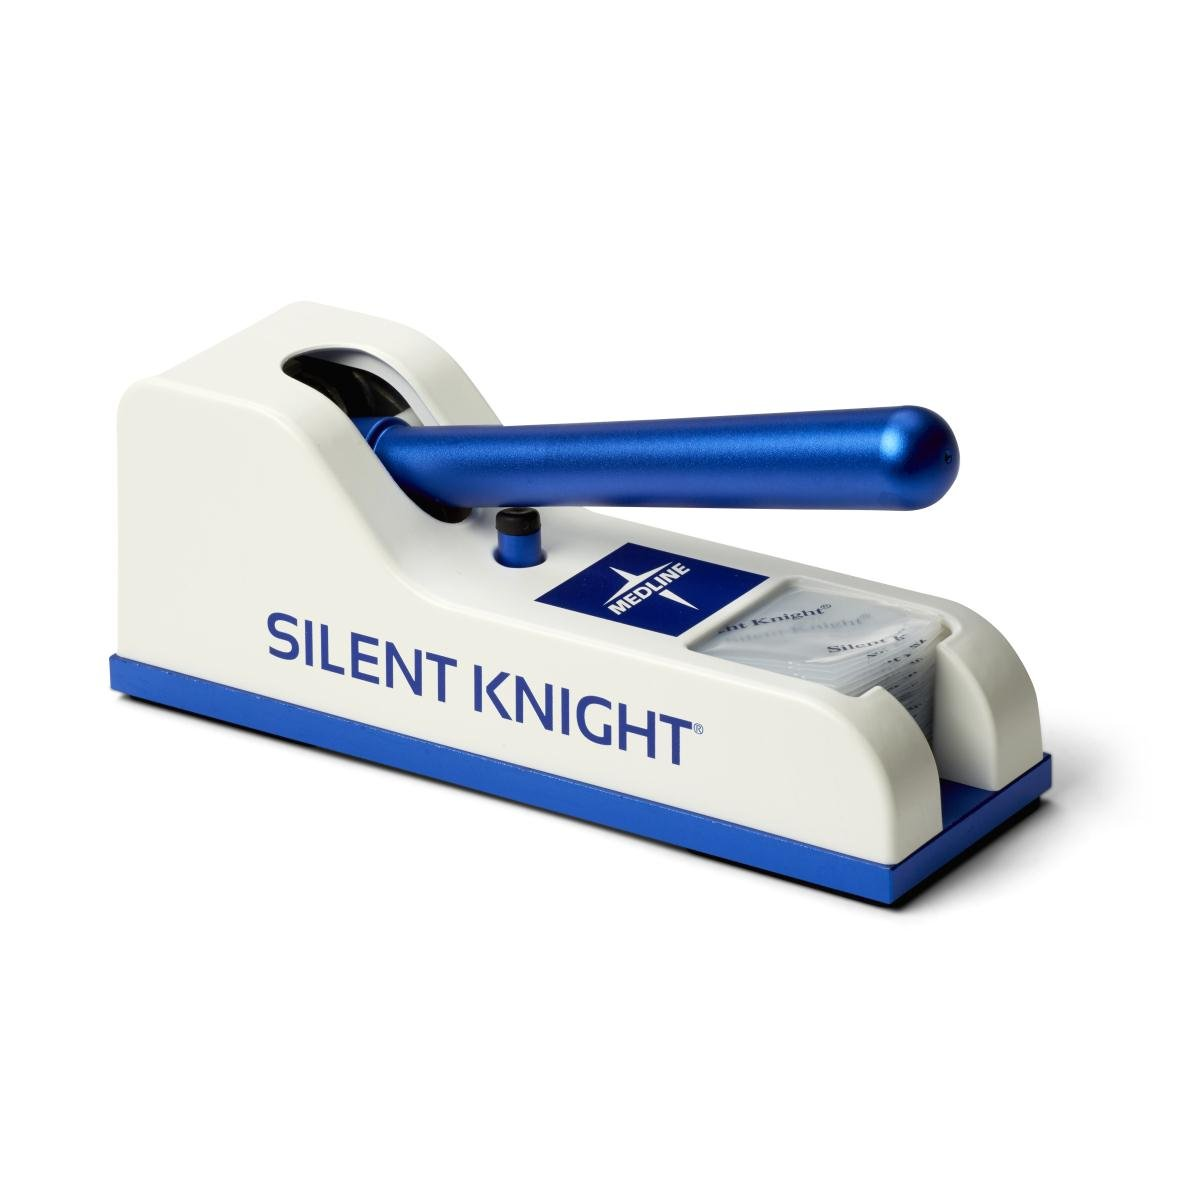 Medline NONSK0500 Silent Knight Crusher by Medline